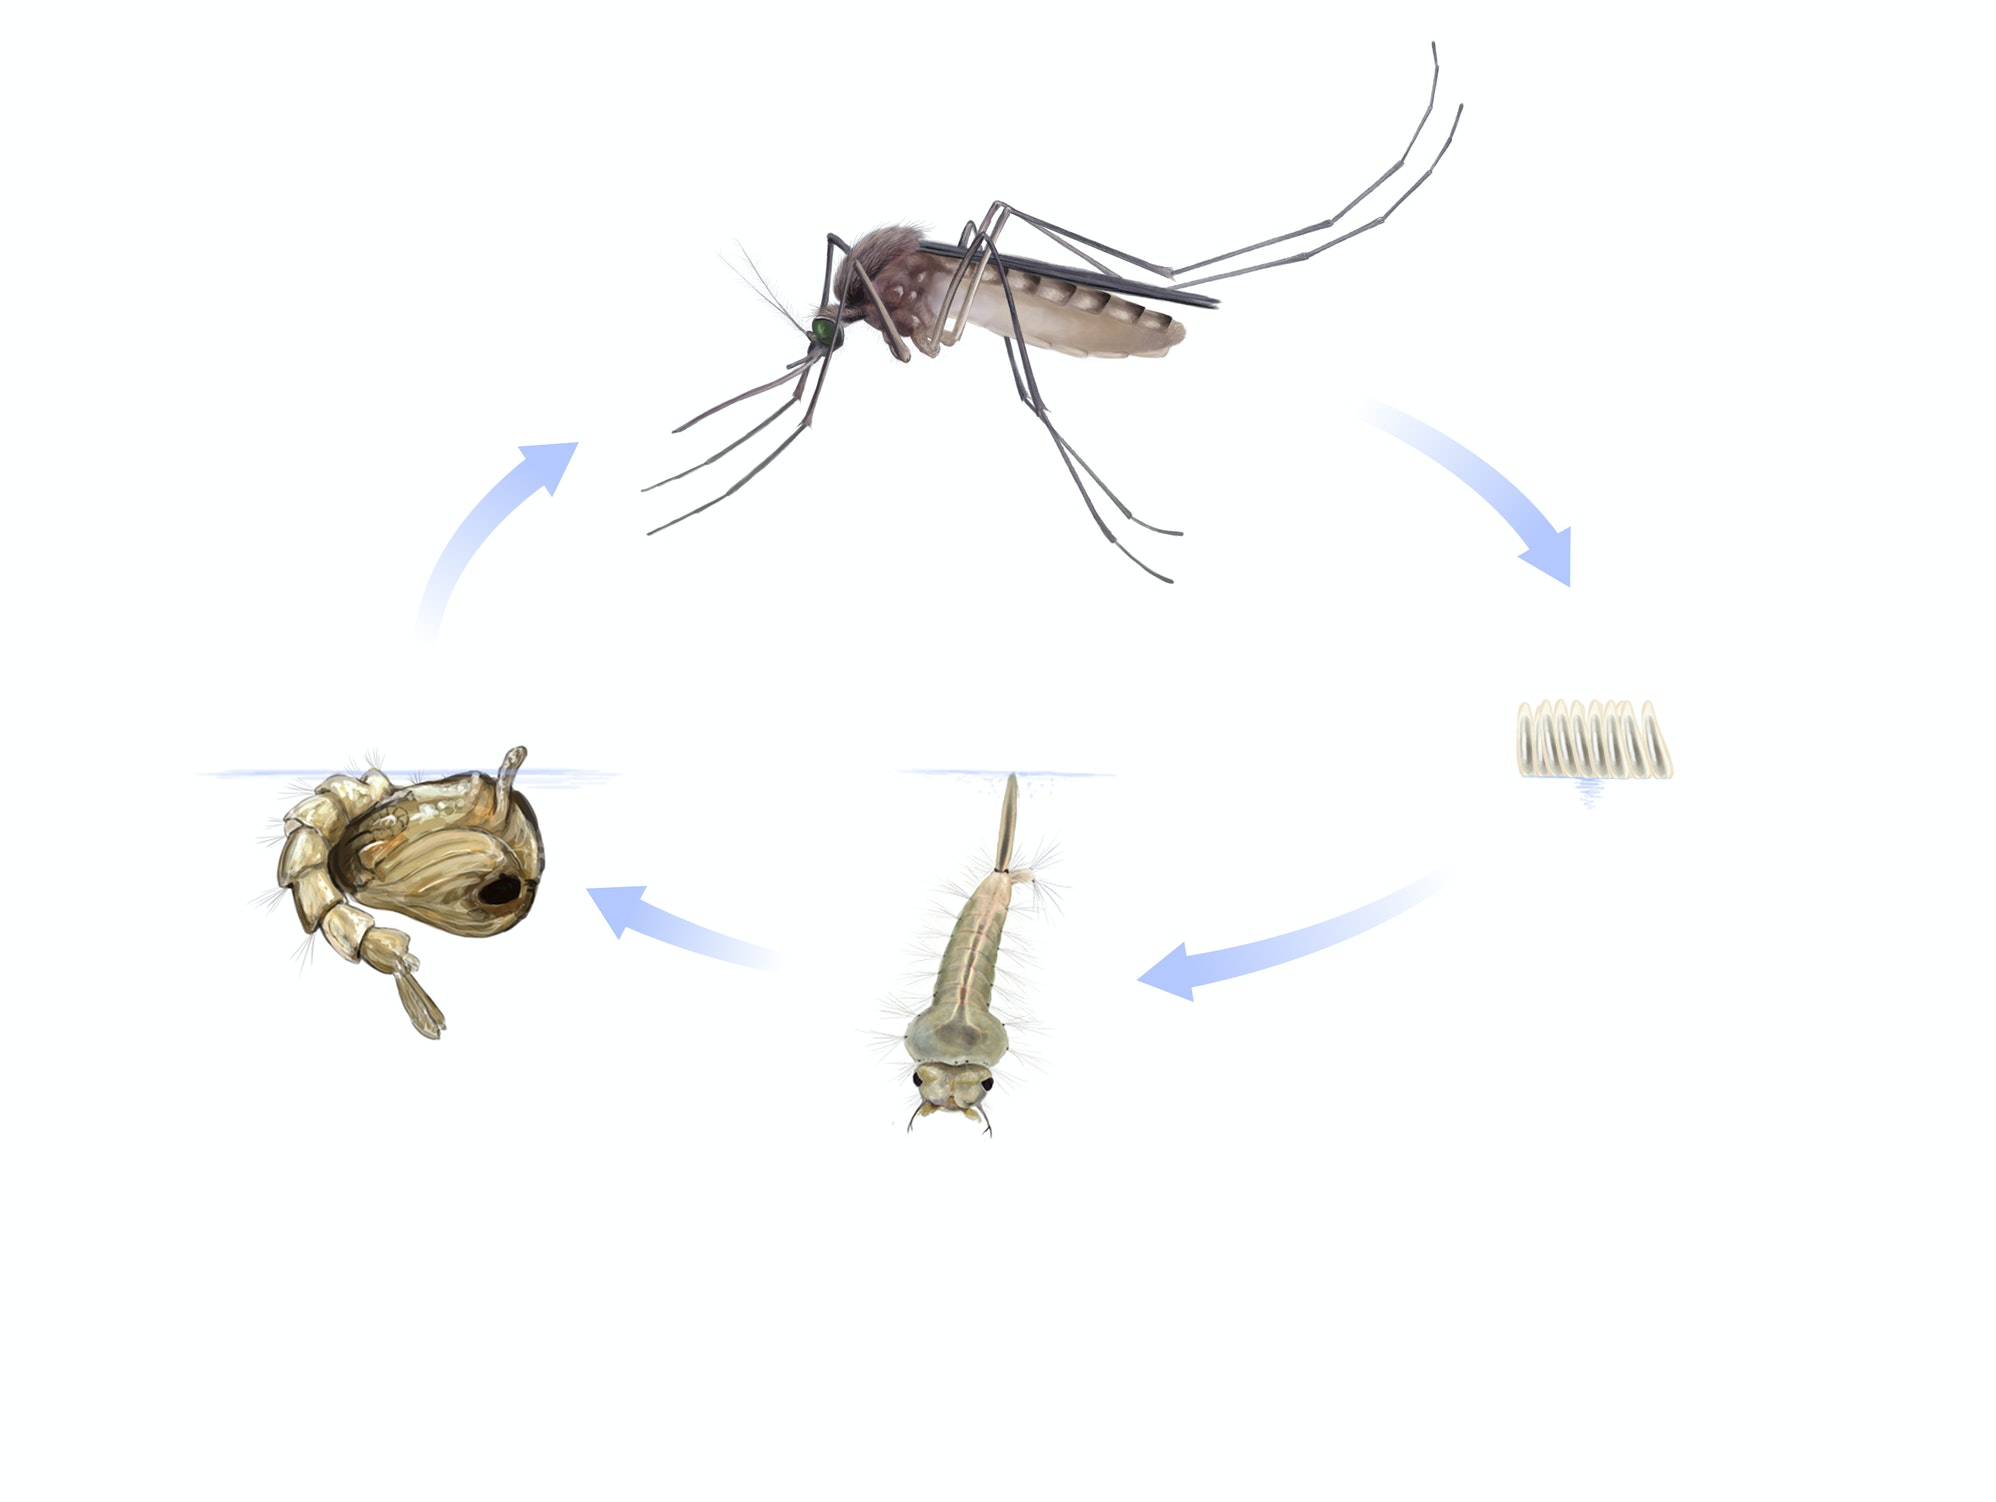 Image of the life-cycle of a mosquito from egg to adult